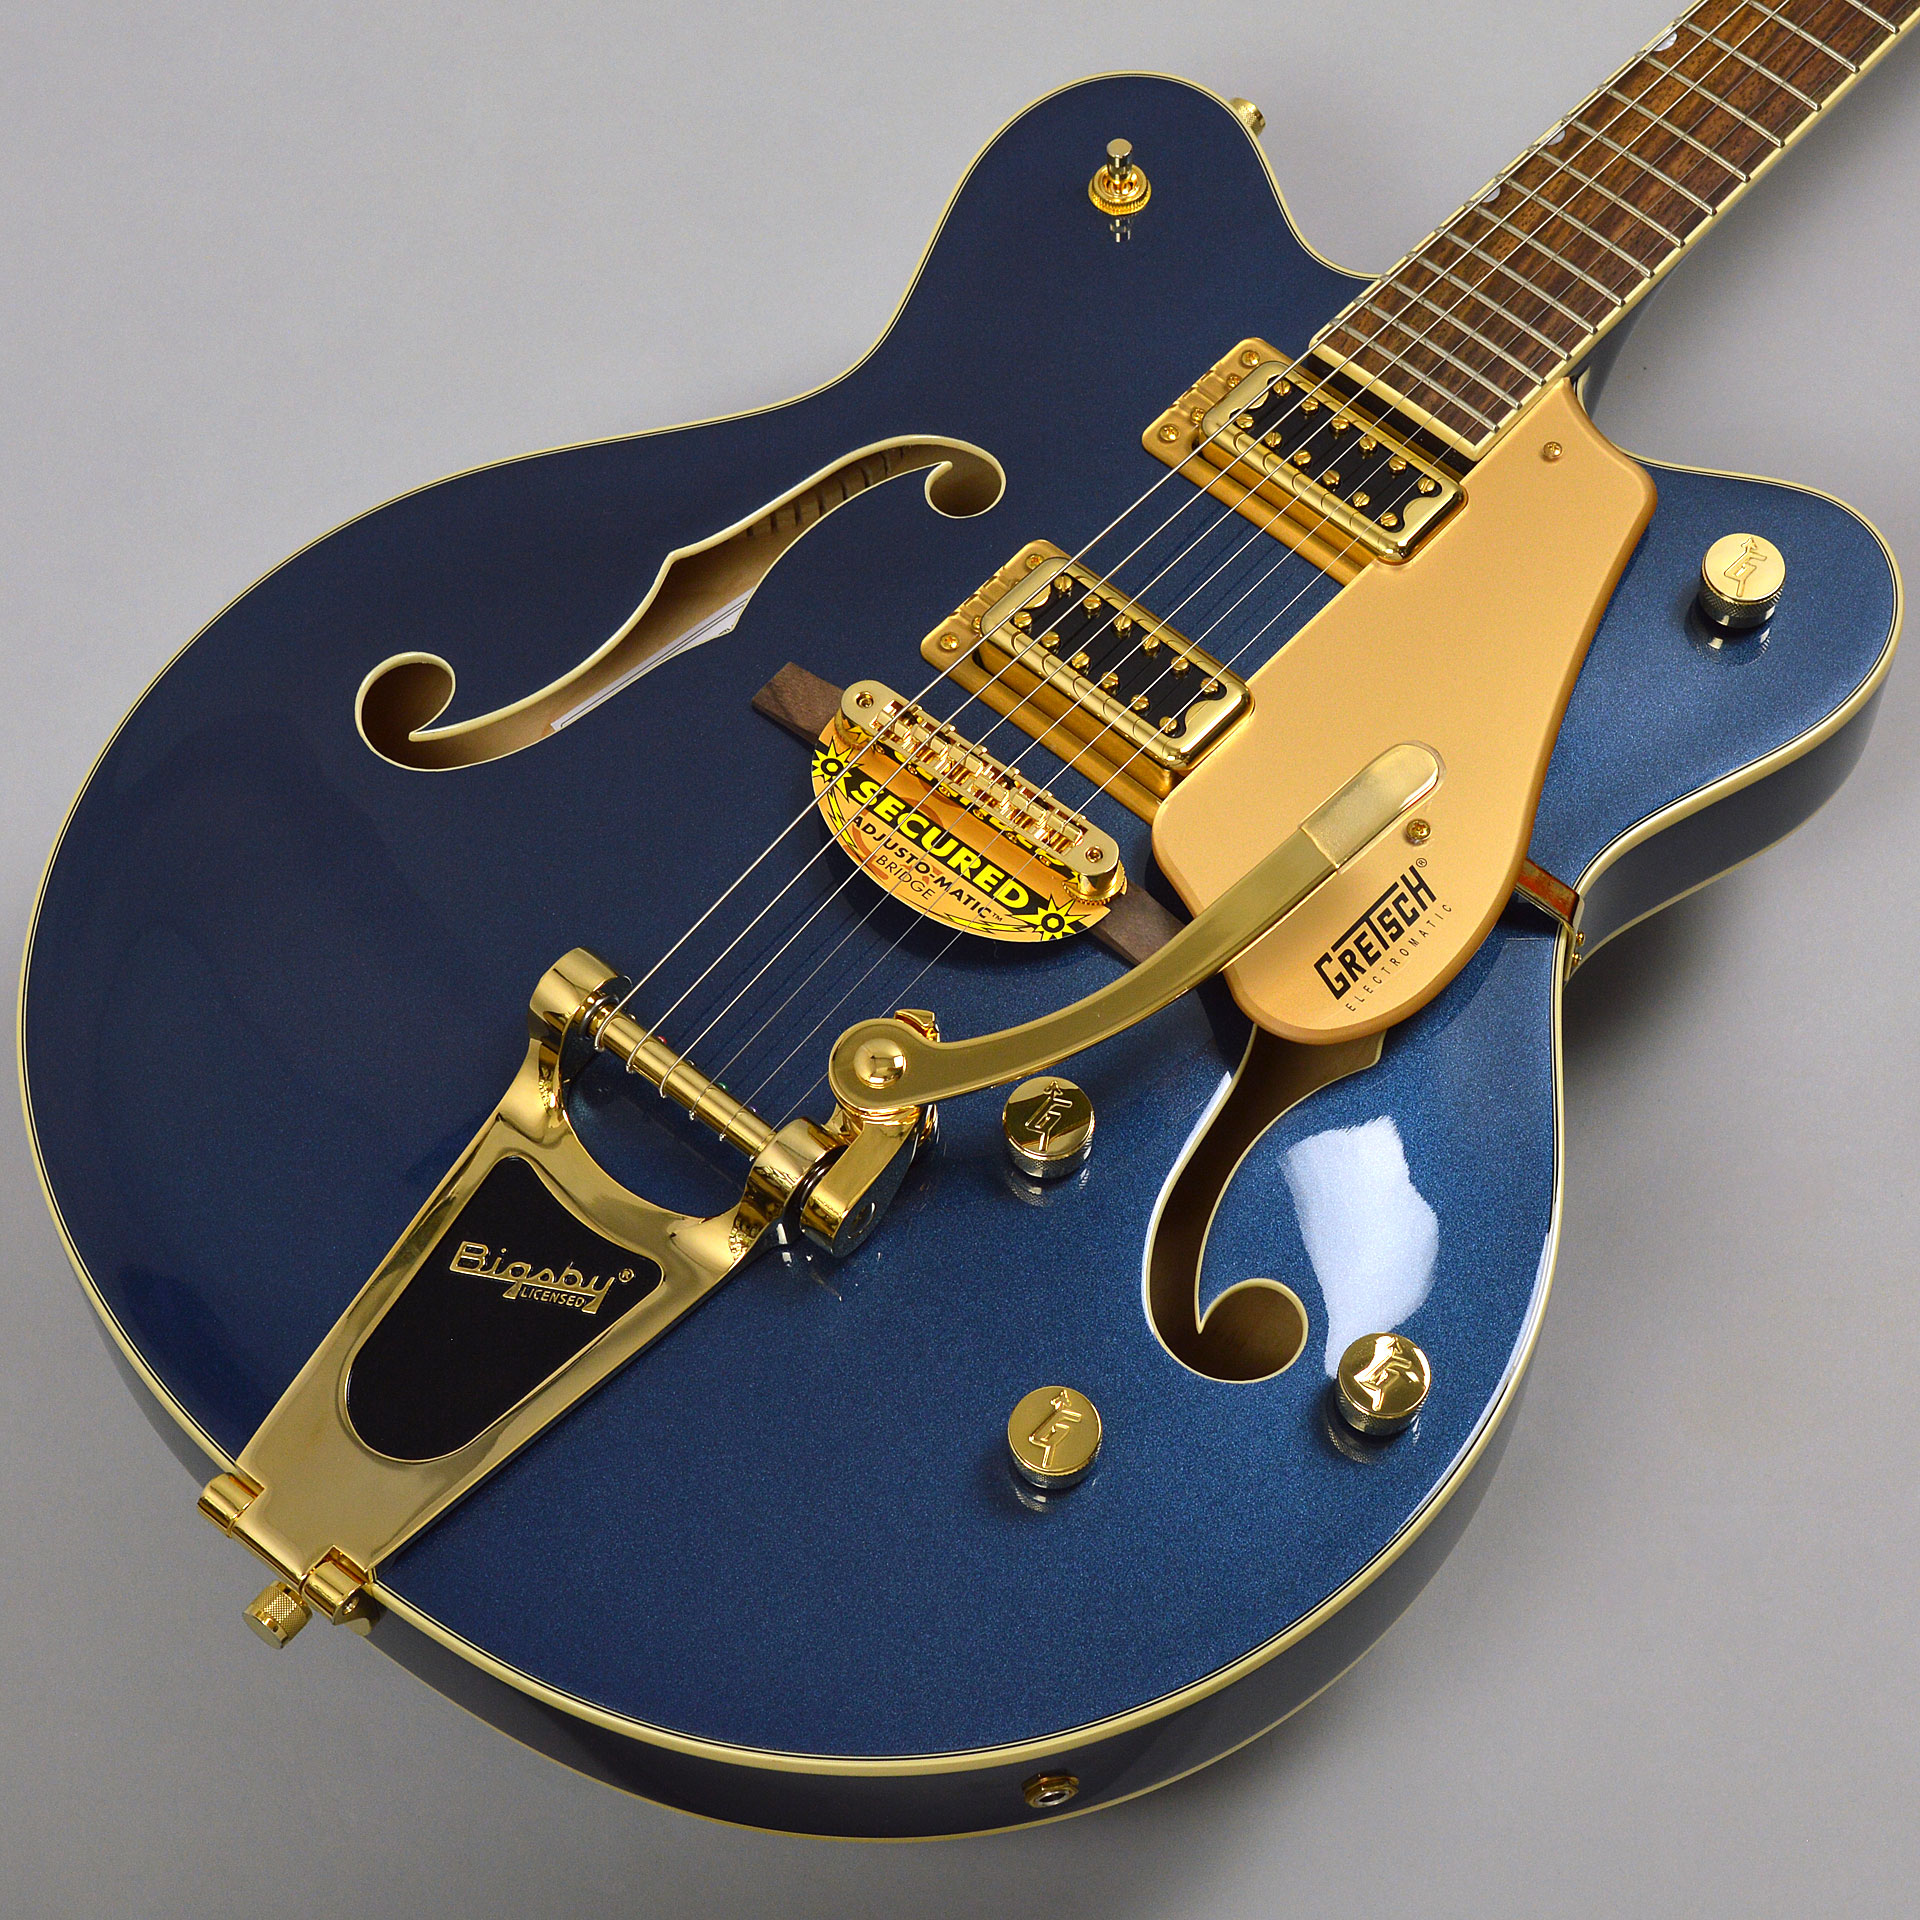 GRETSCH G5422TG Limited Edition Electromatic Hollow Body Double-Cut with Bigsby Cadillac Greenサムネ画像